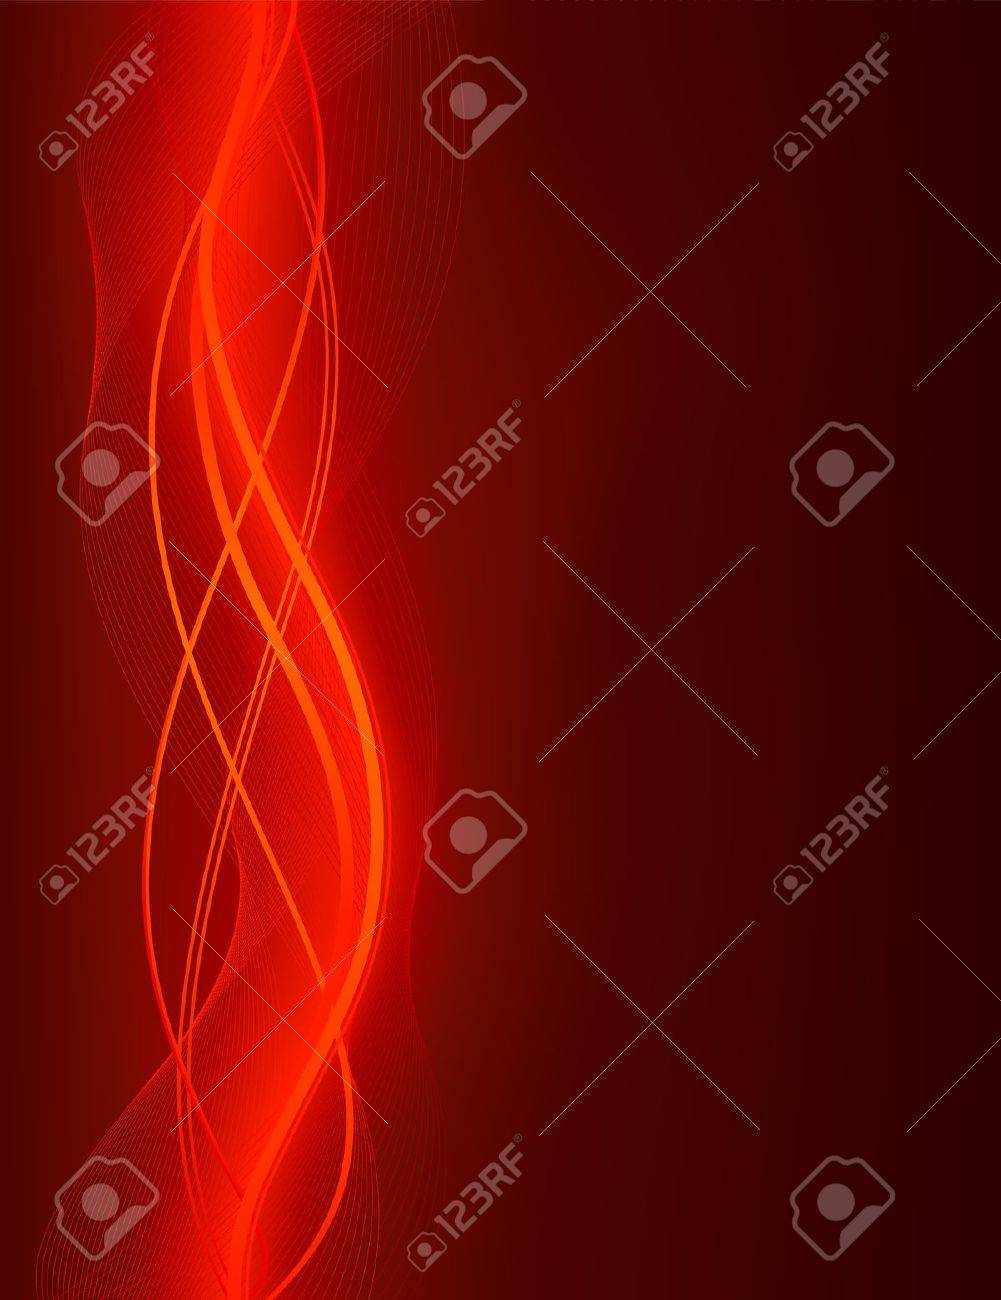 glowing abstract wave background in shades of red use of global